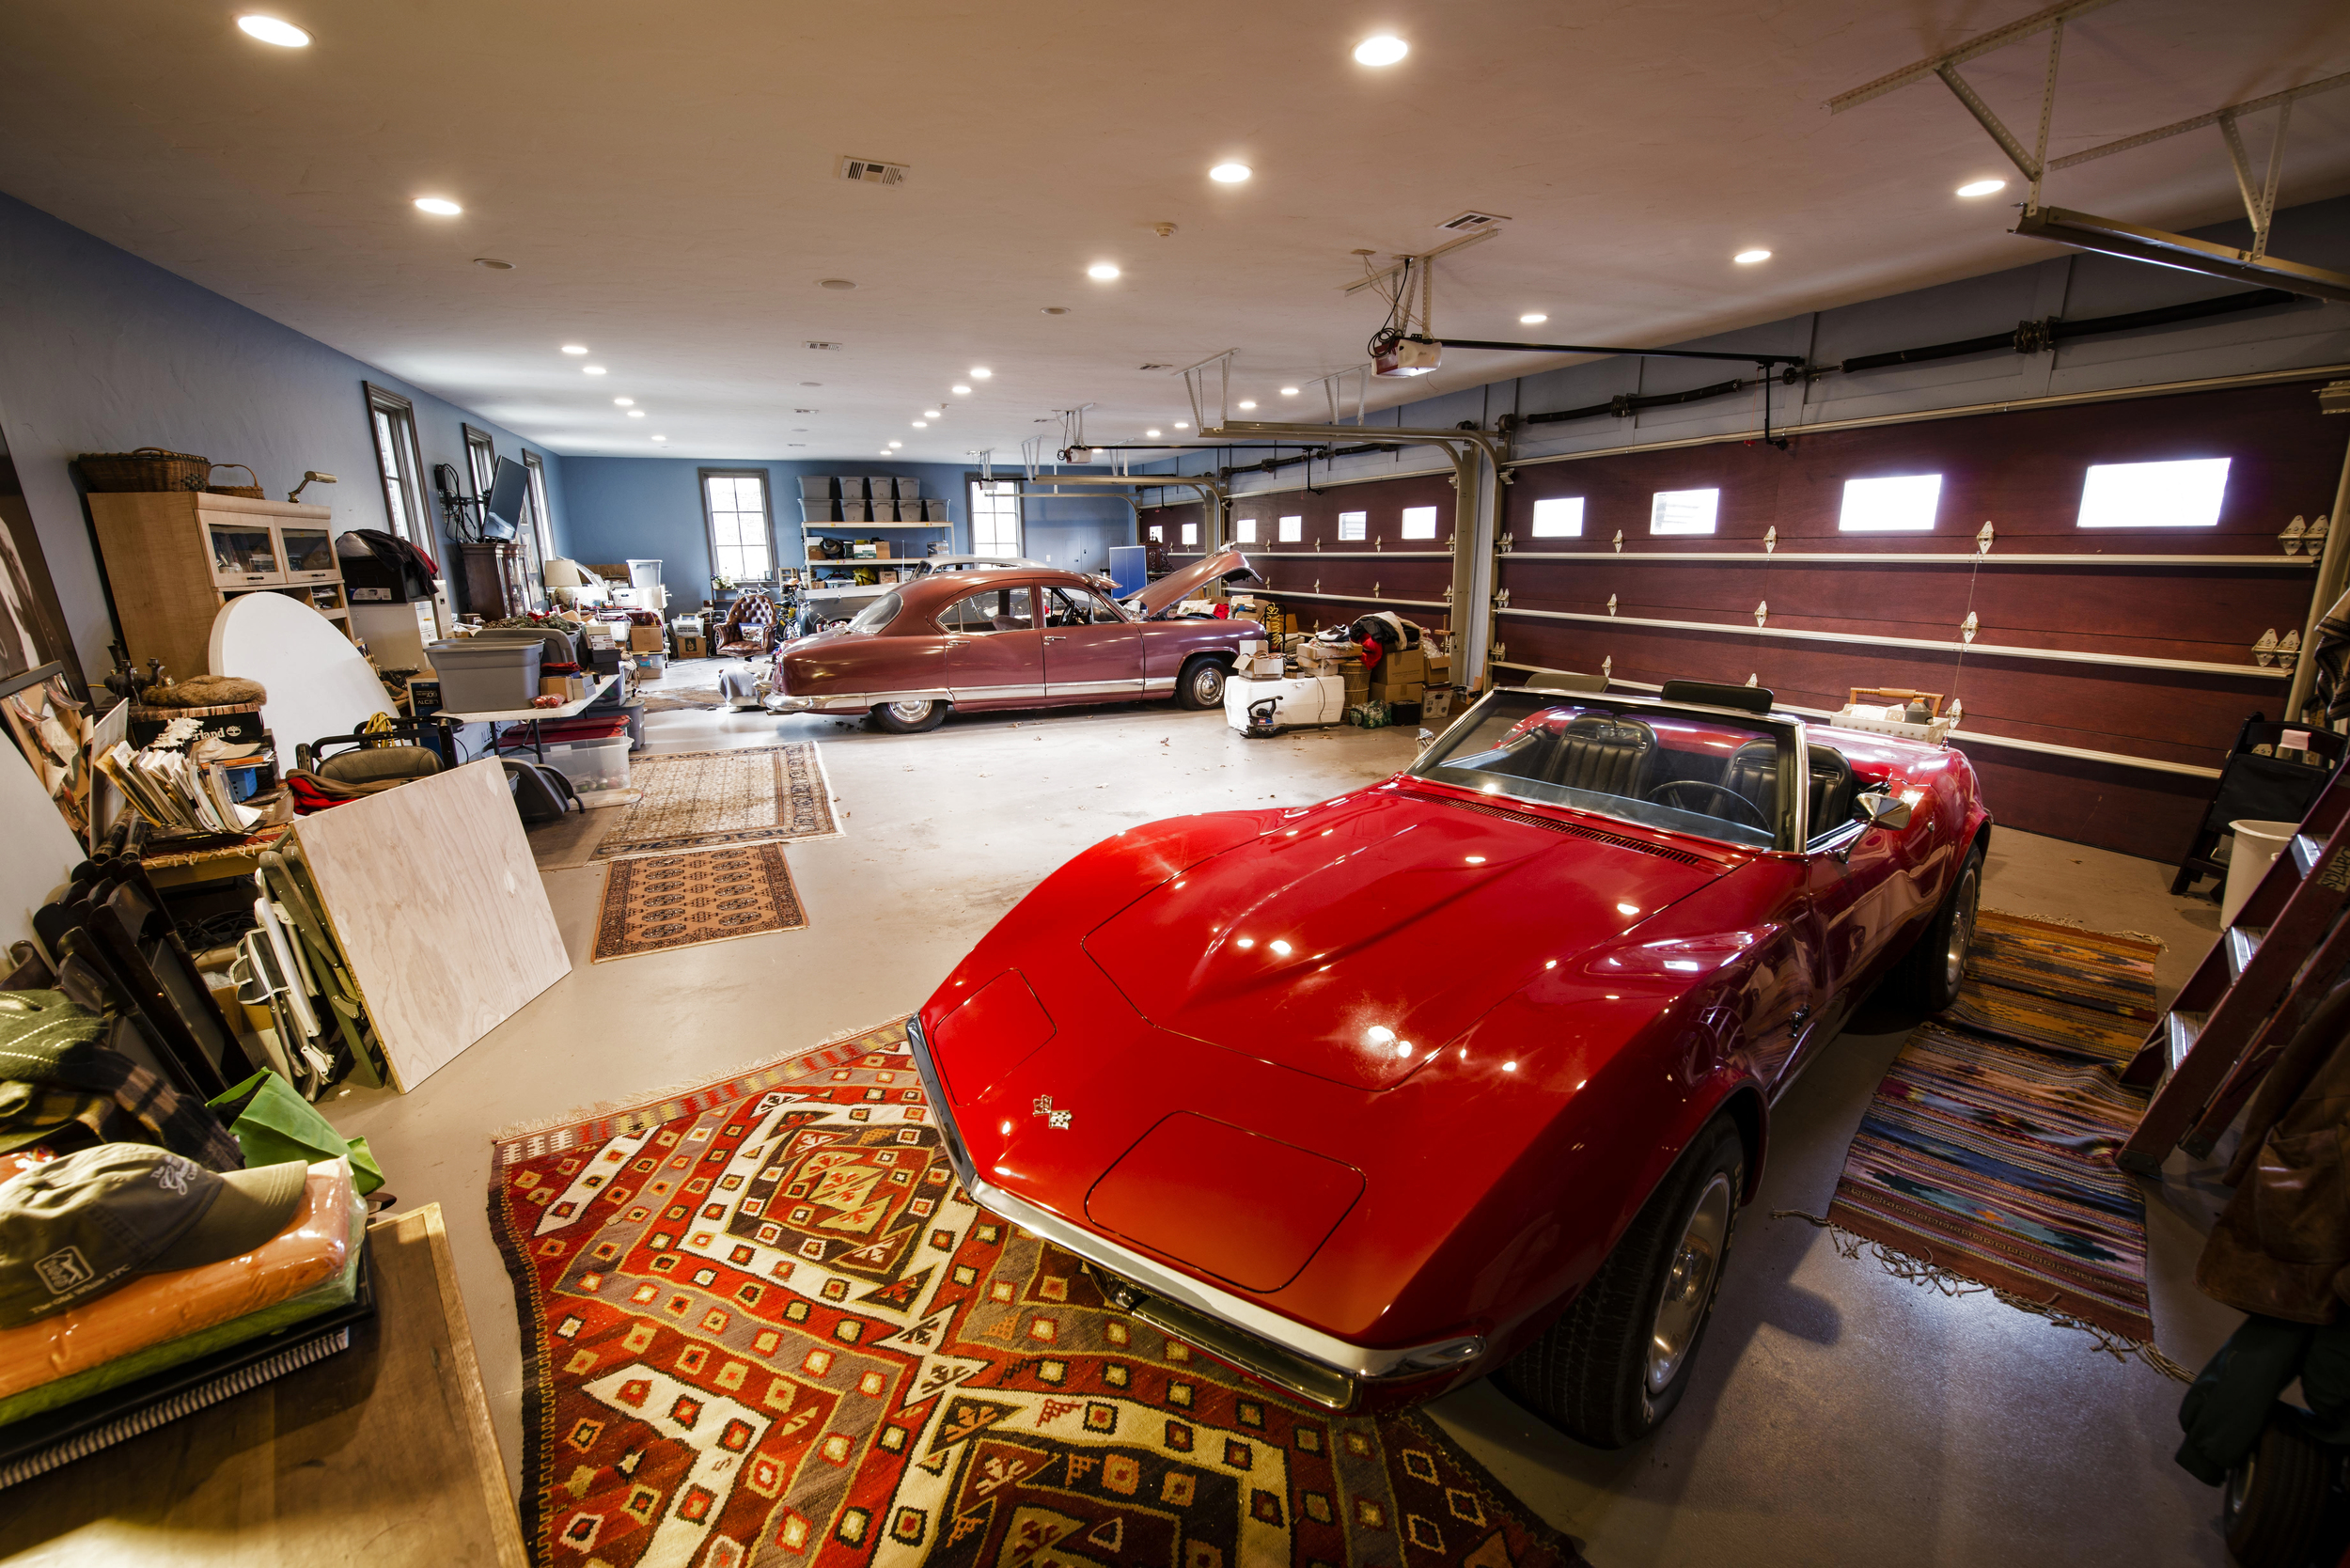 His 5-car garage. The ultimate man cave.